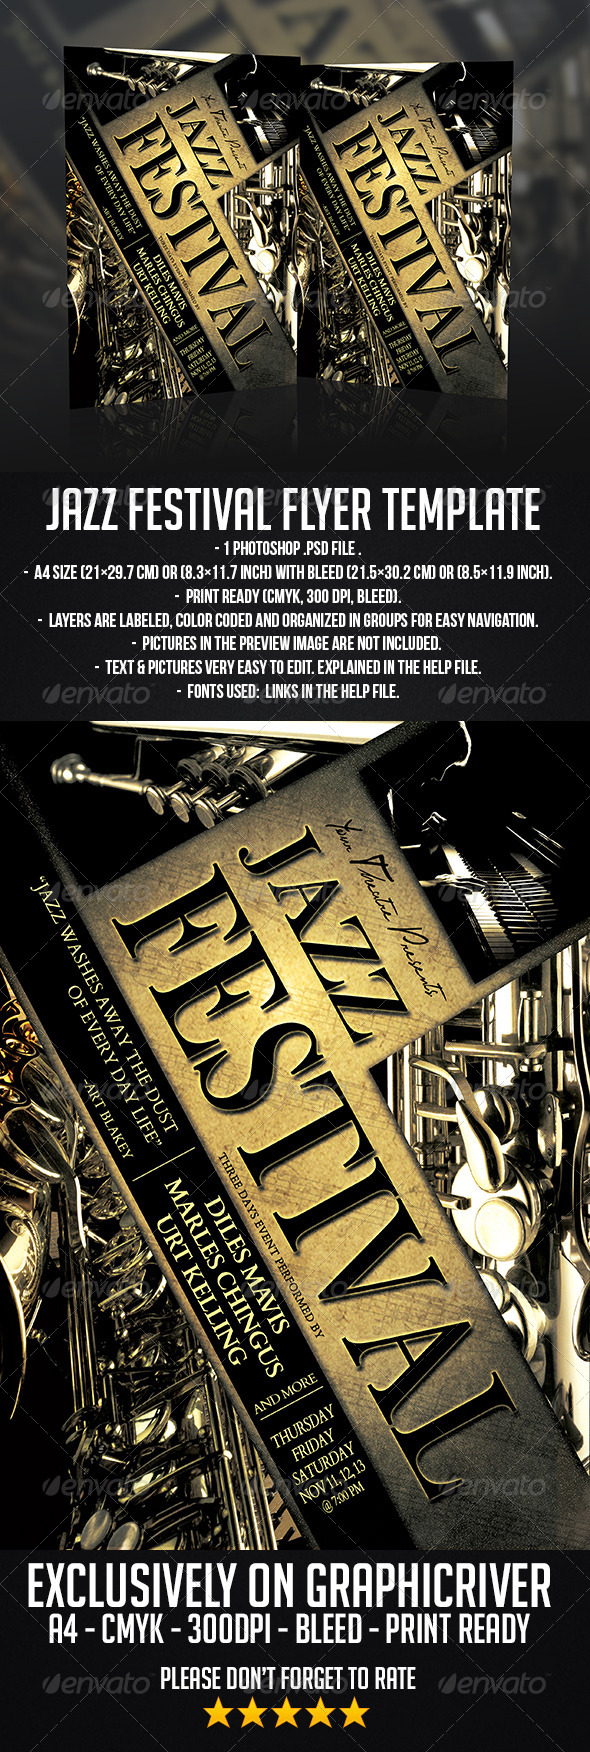 GraphicRiver Jazz Festival Flyer Template 6490682